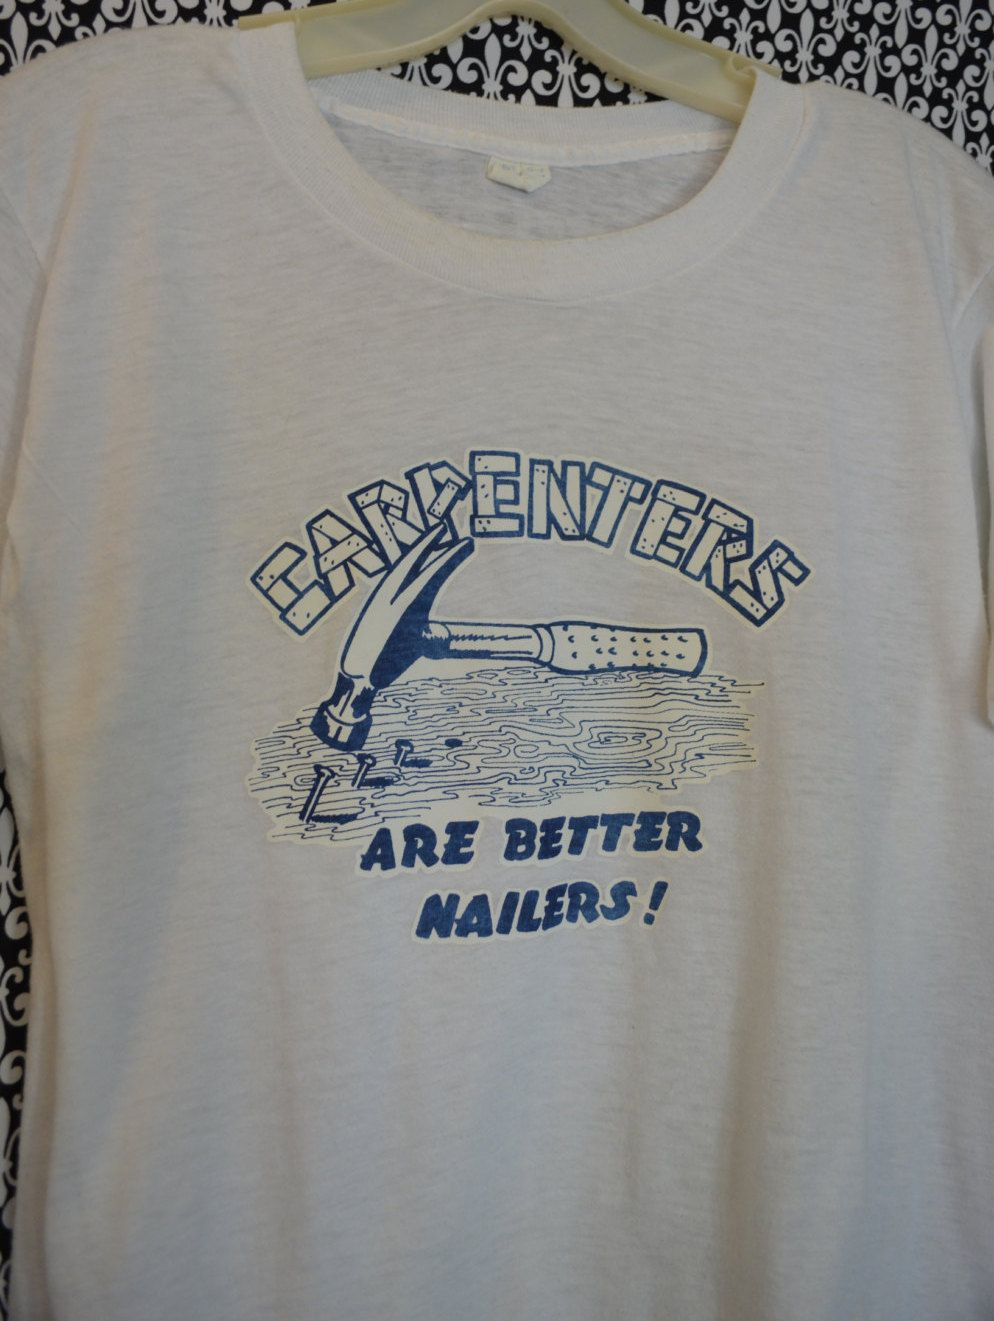 Retro Printed Shirt says Carpenters are Better Nailers Print Lettering  Vintage T-Shirt White Blue Women s Medium Short Sleeves Crew Neck by  SerialMateriaL ... bf166c043e